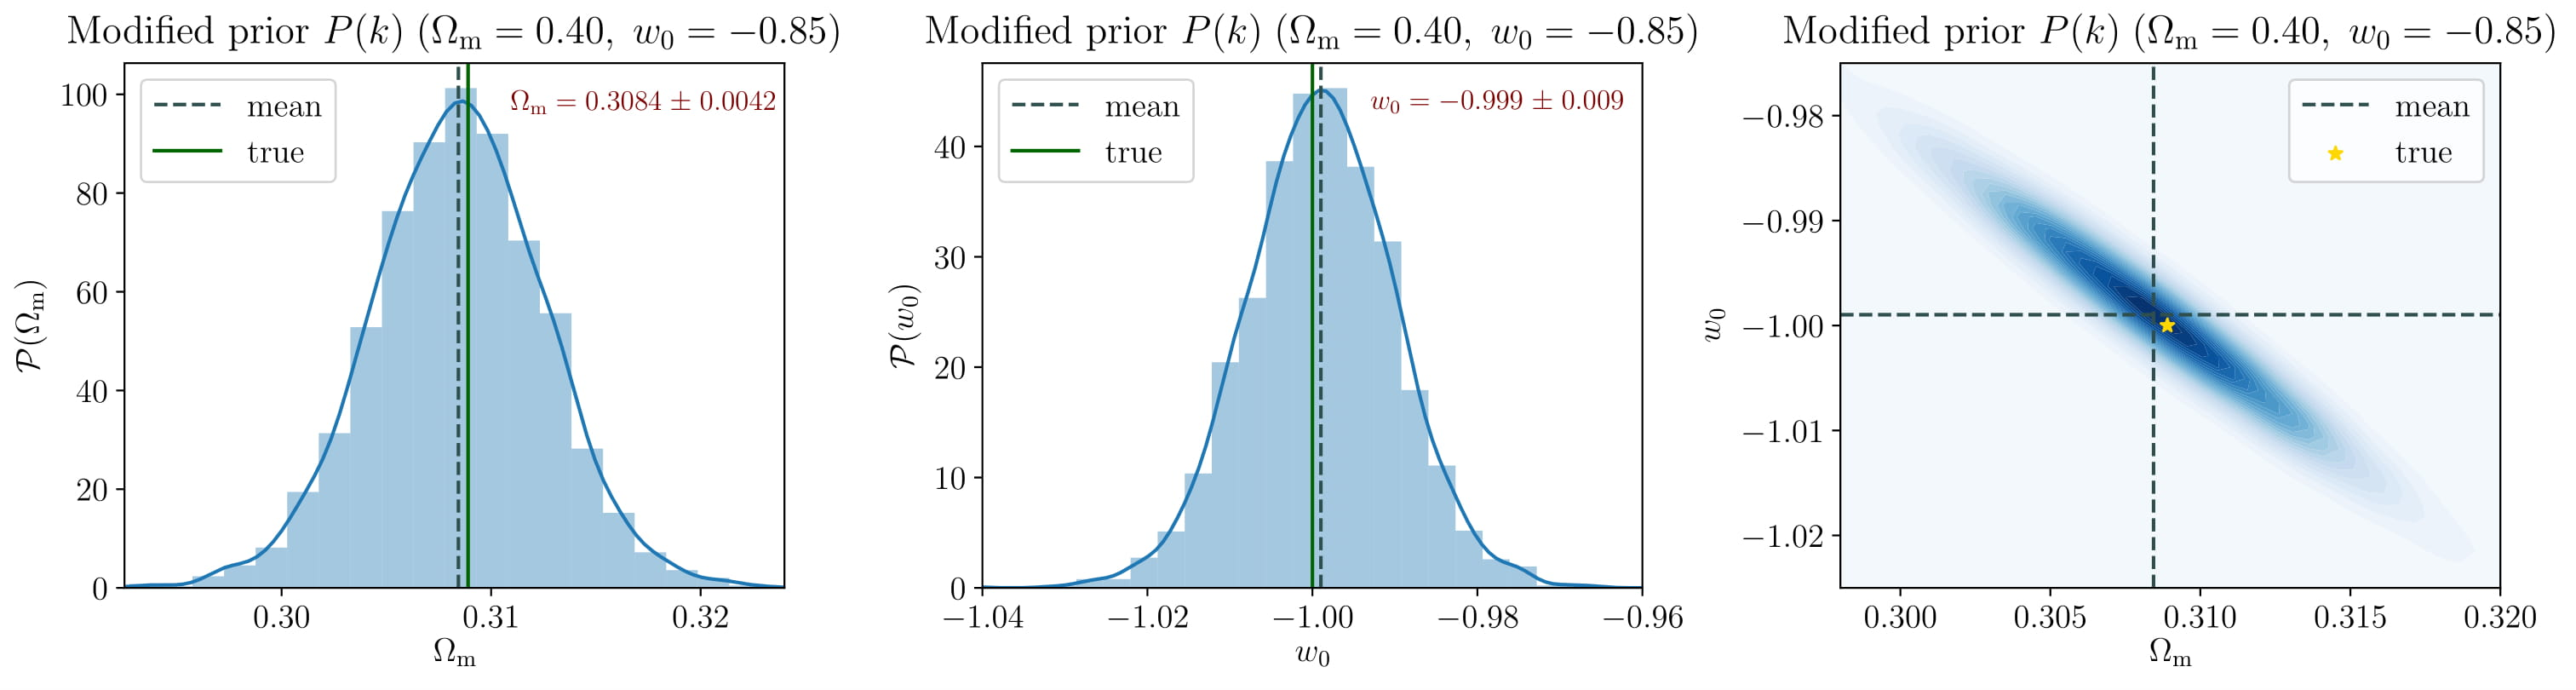 Cosmological constraints with modified prior